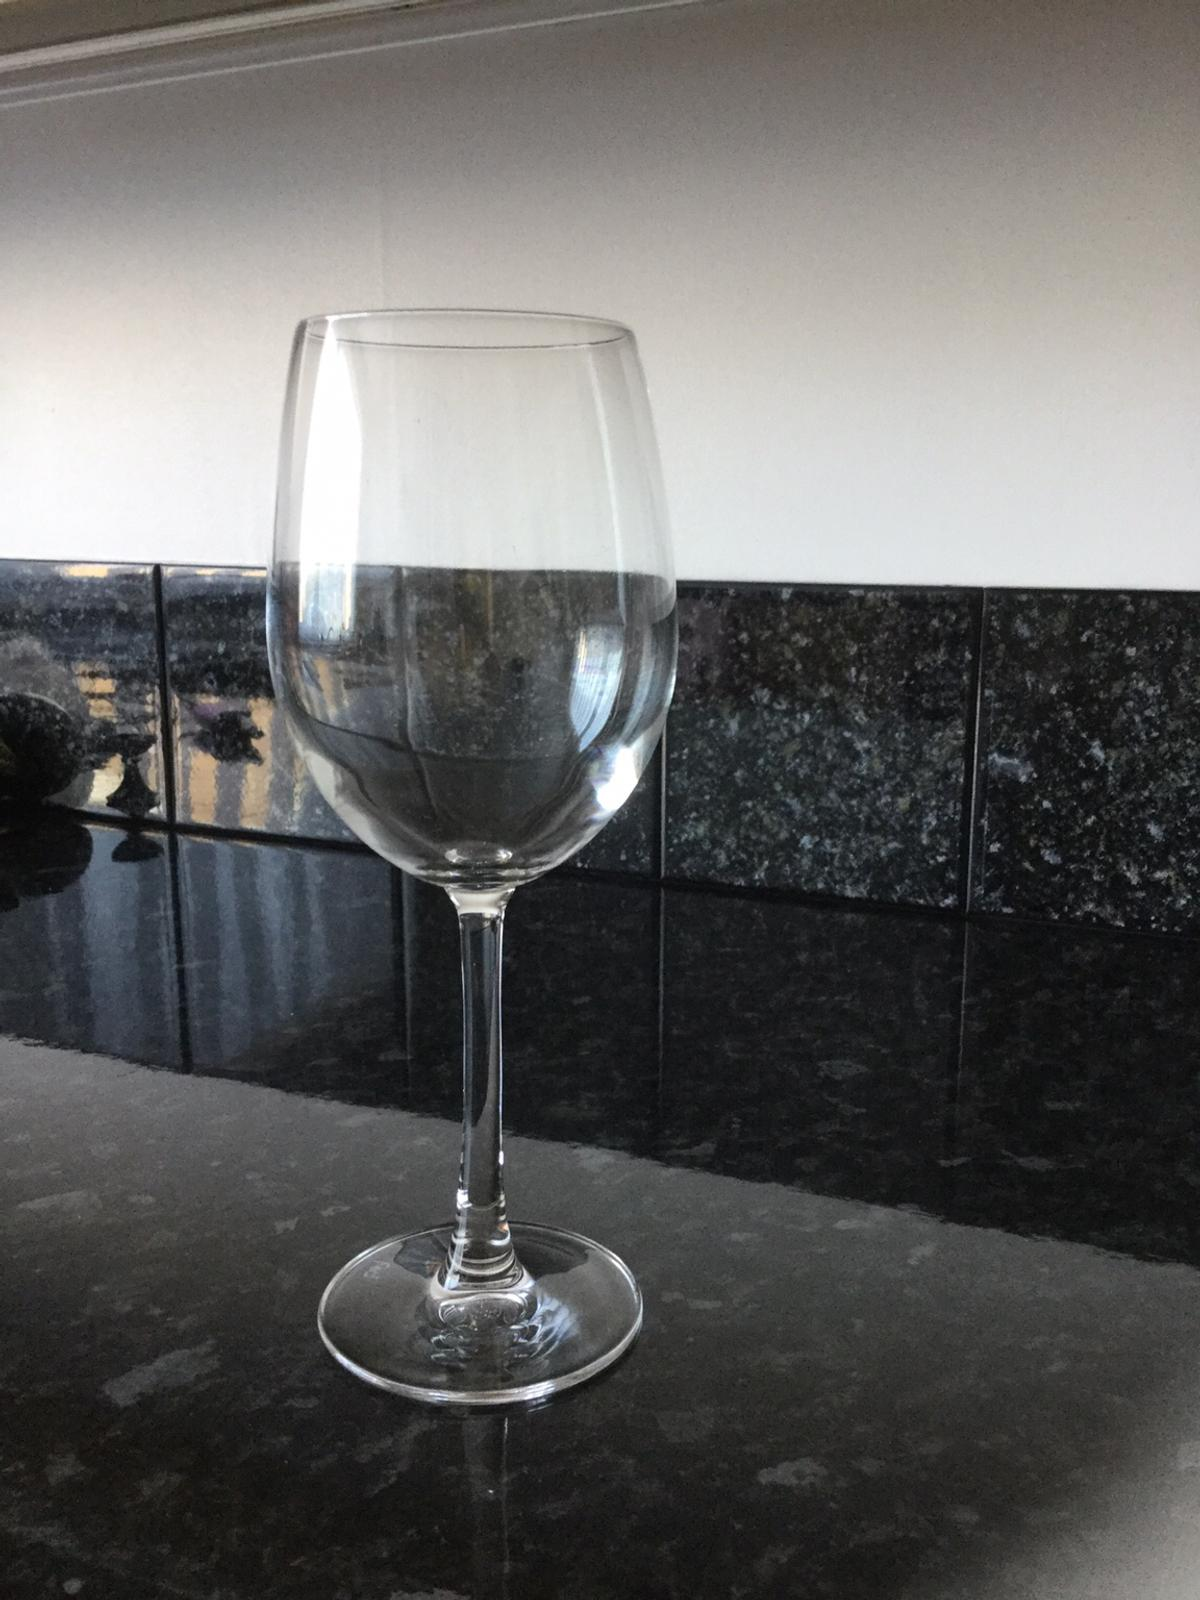 Large wine glass, 22 cm high, no time wasters please, take a look at my other items. I'm in Deal